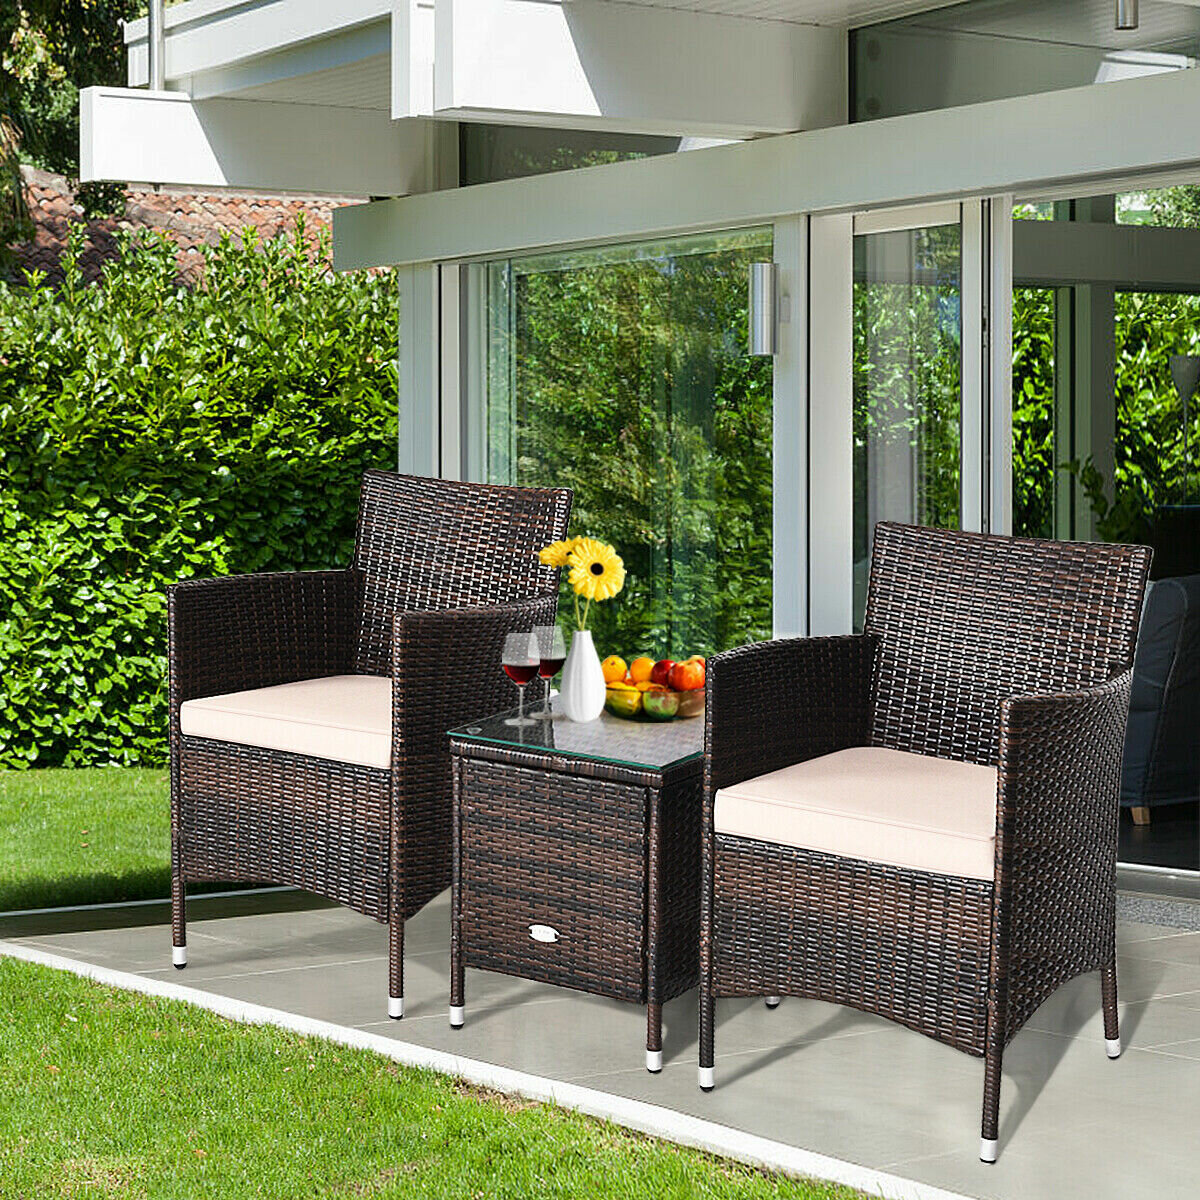 Ebern Designs Ailith 3 Piece Rattan Seating Group With Cushions Reviews Wayfair Ca